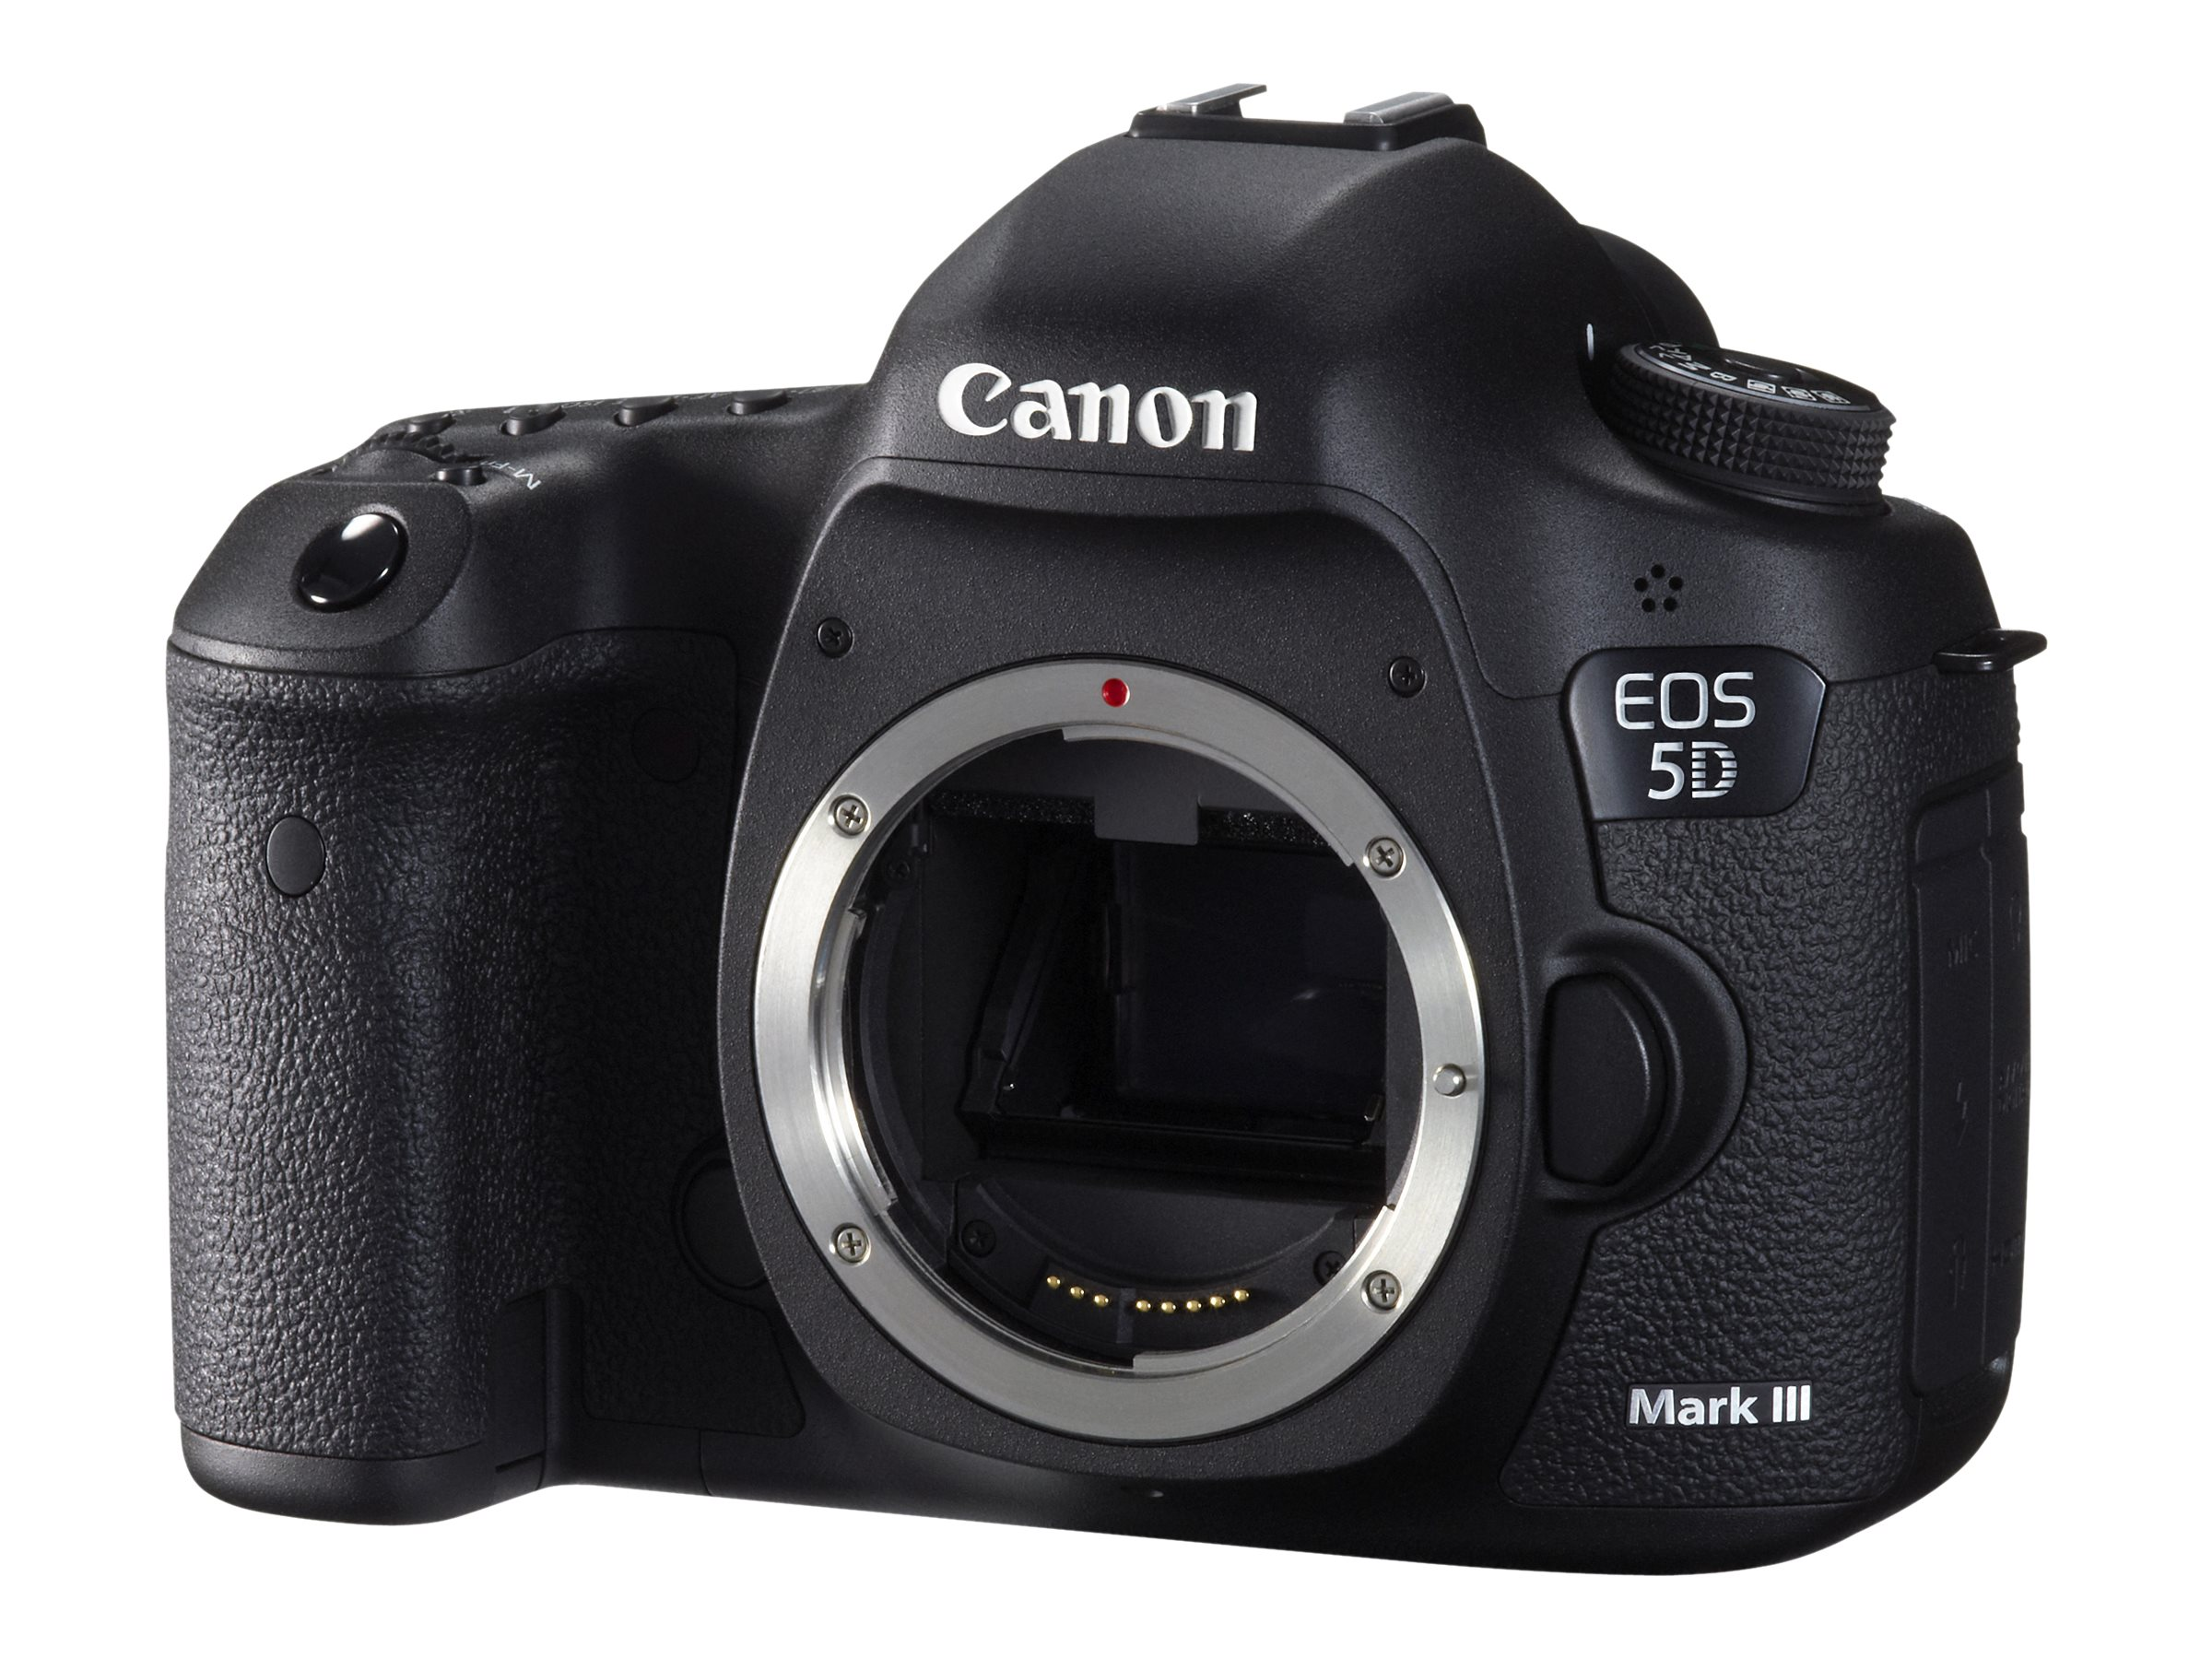 Canon EOS 5D Mark III Digital Camera (Body Only), 5260B002